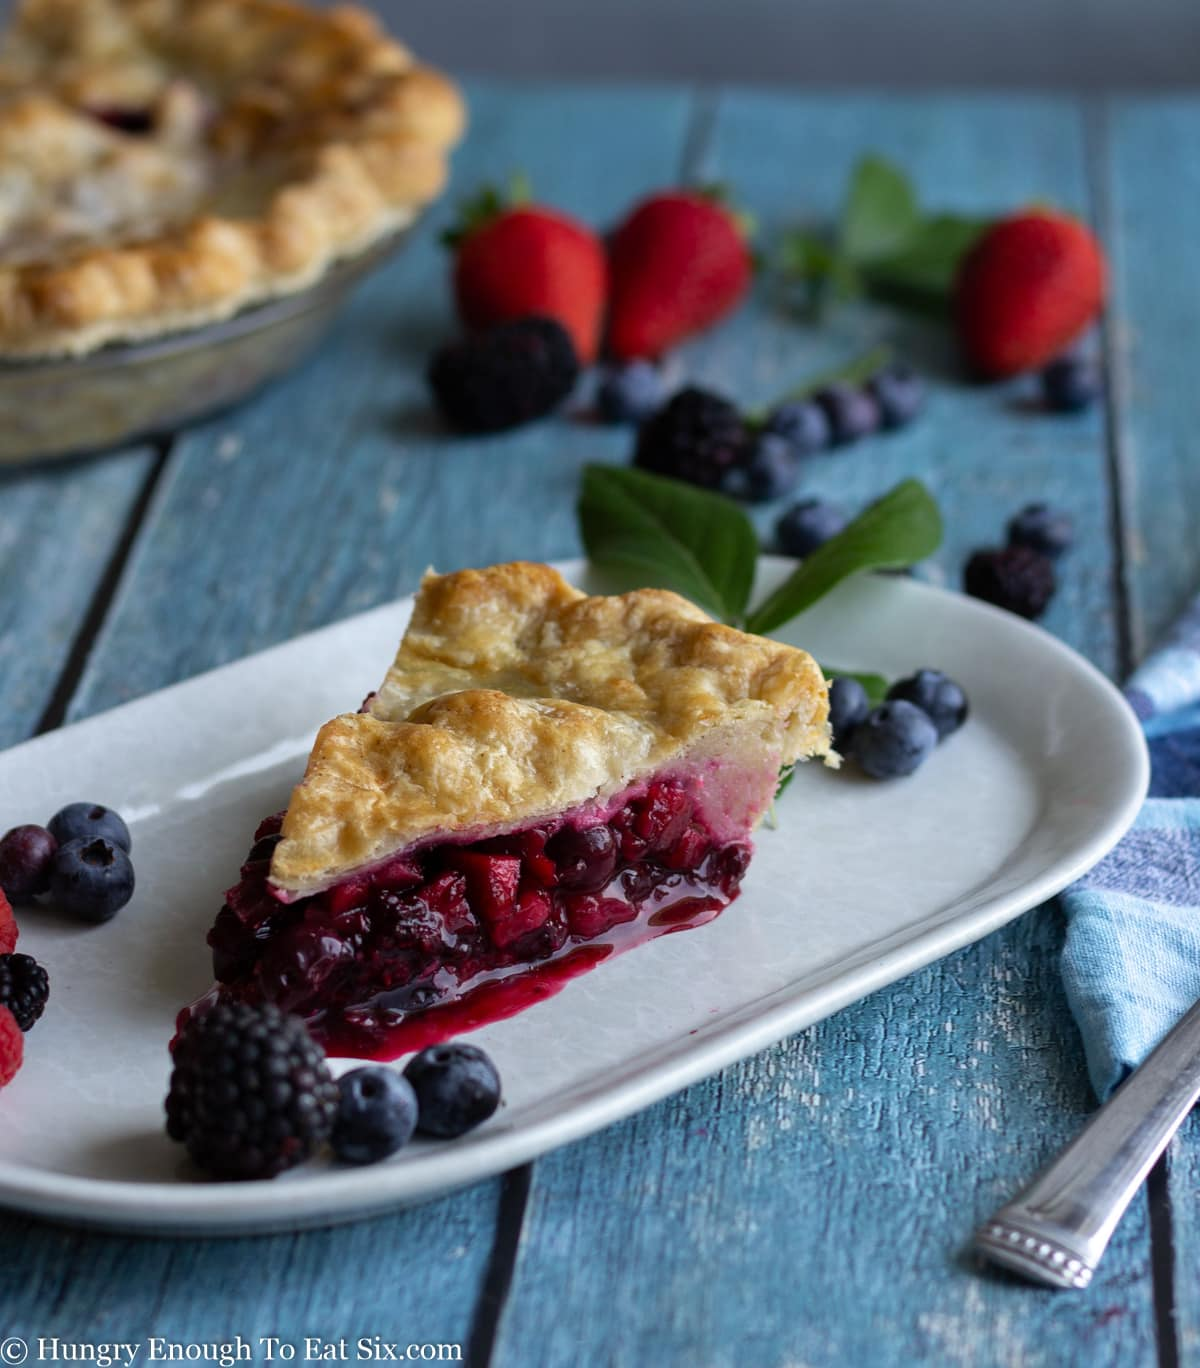 White oblong plate with slice of berry pie.